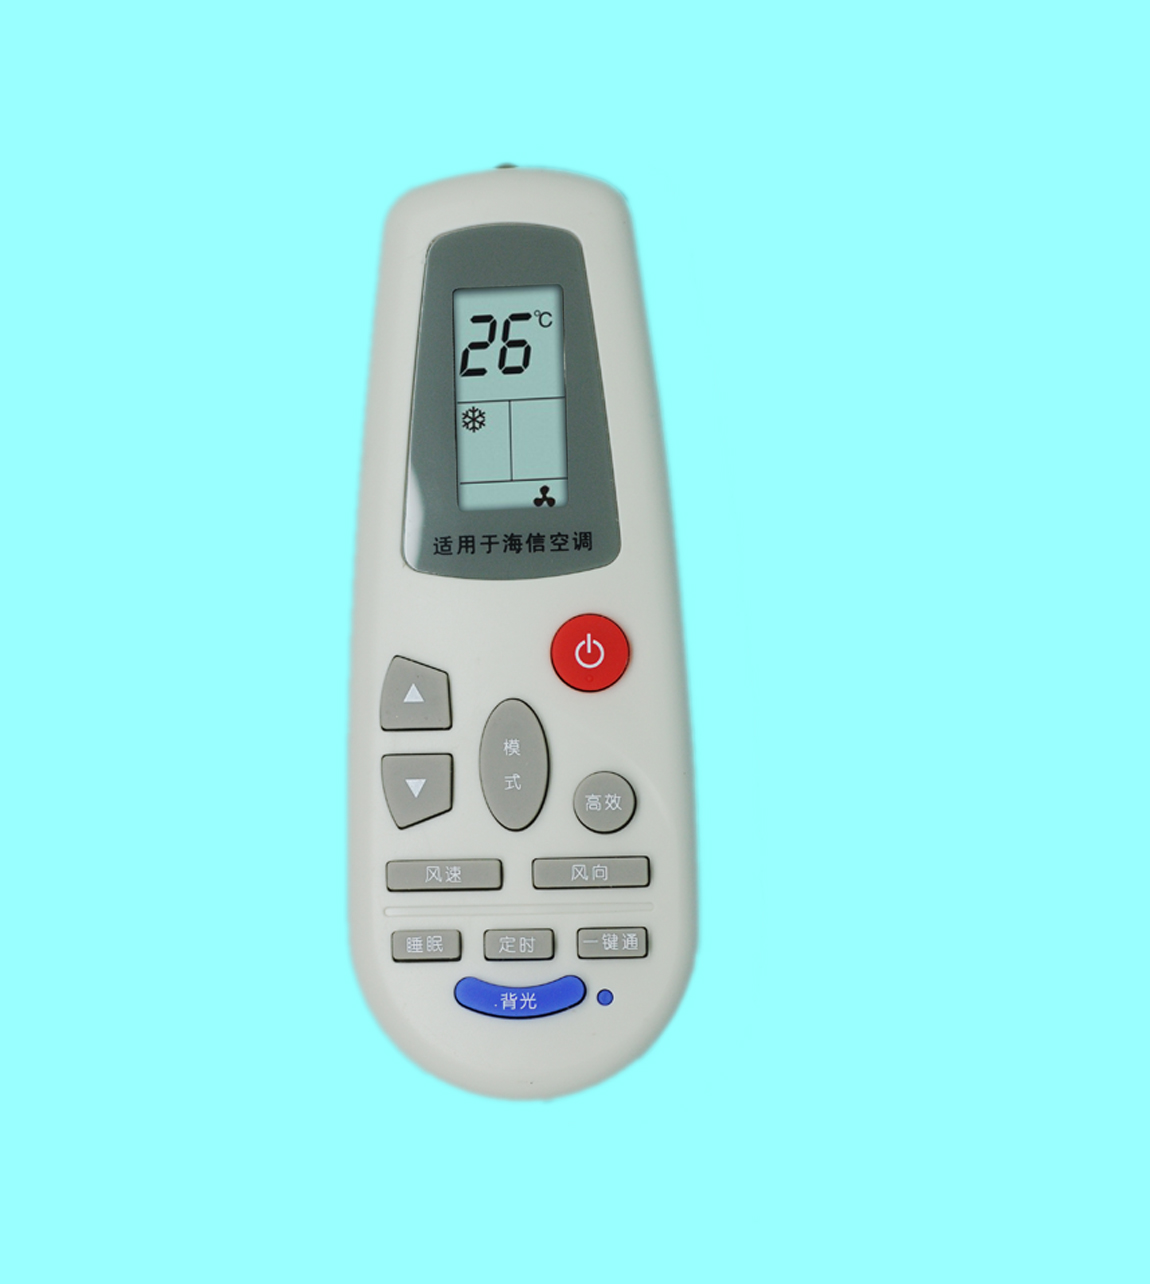 Hisense hisense hisense air conditioner remote control for air conditioning remote control kfr-32gw/27 remote control remote control